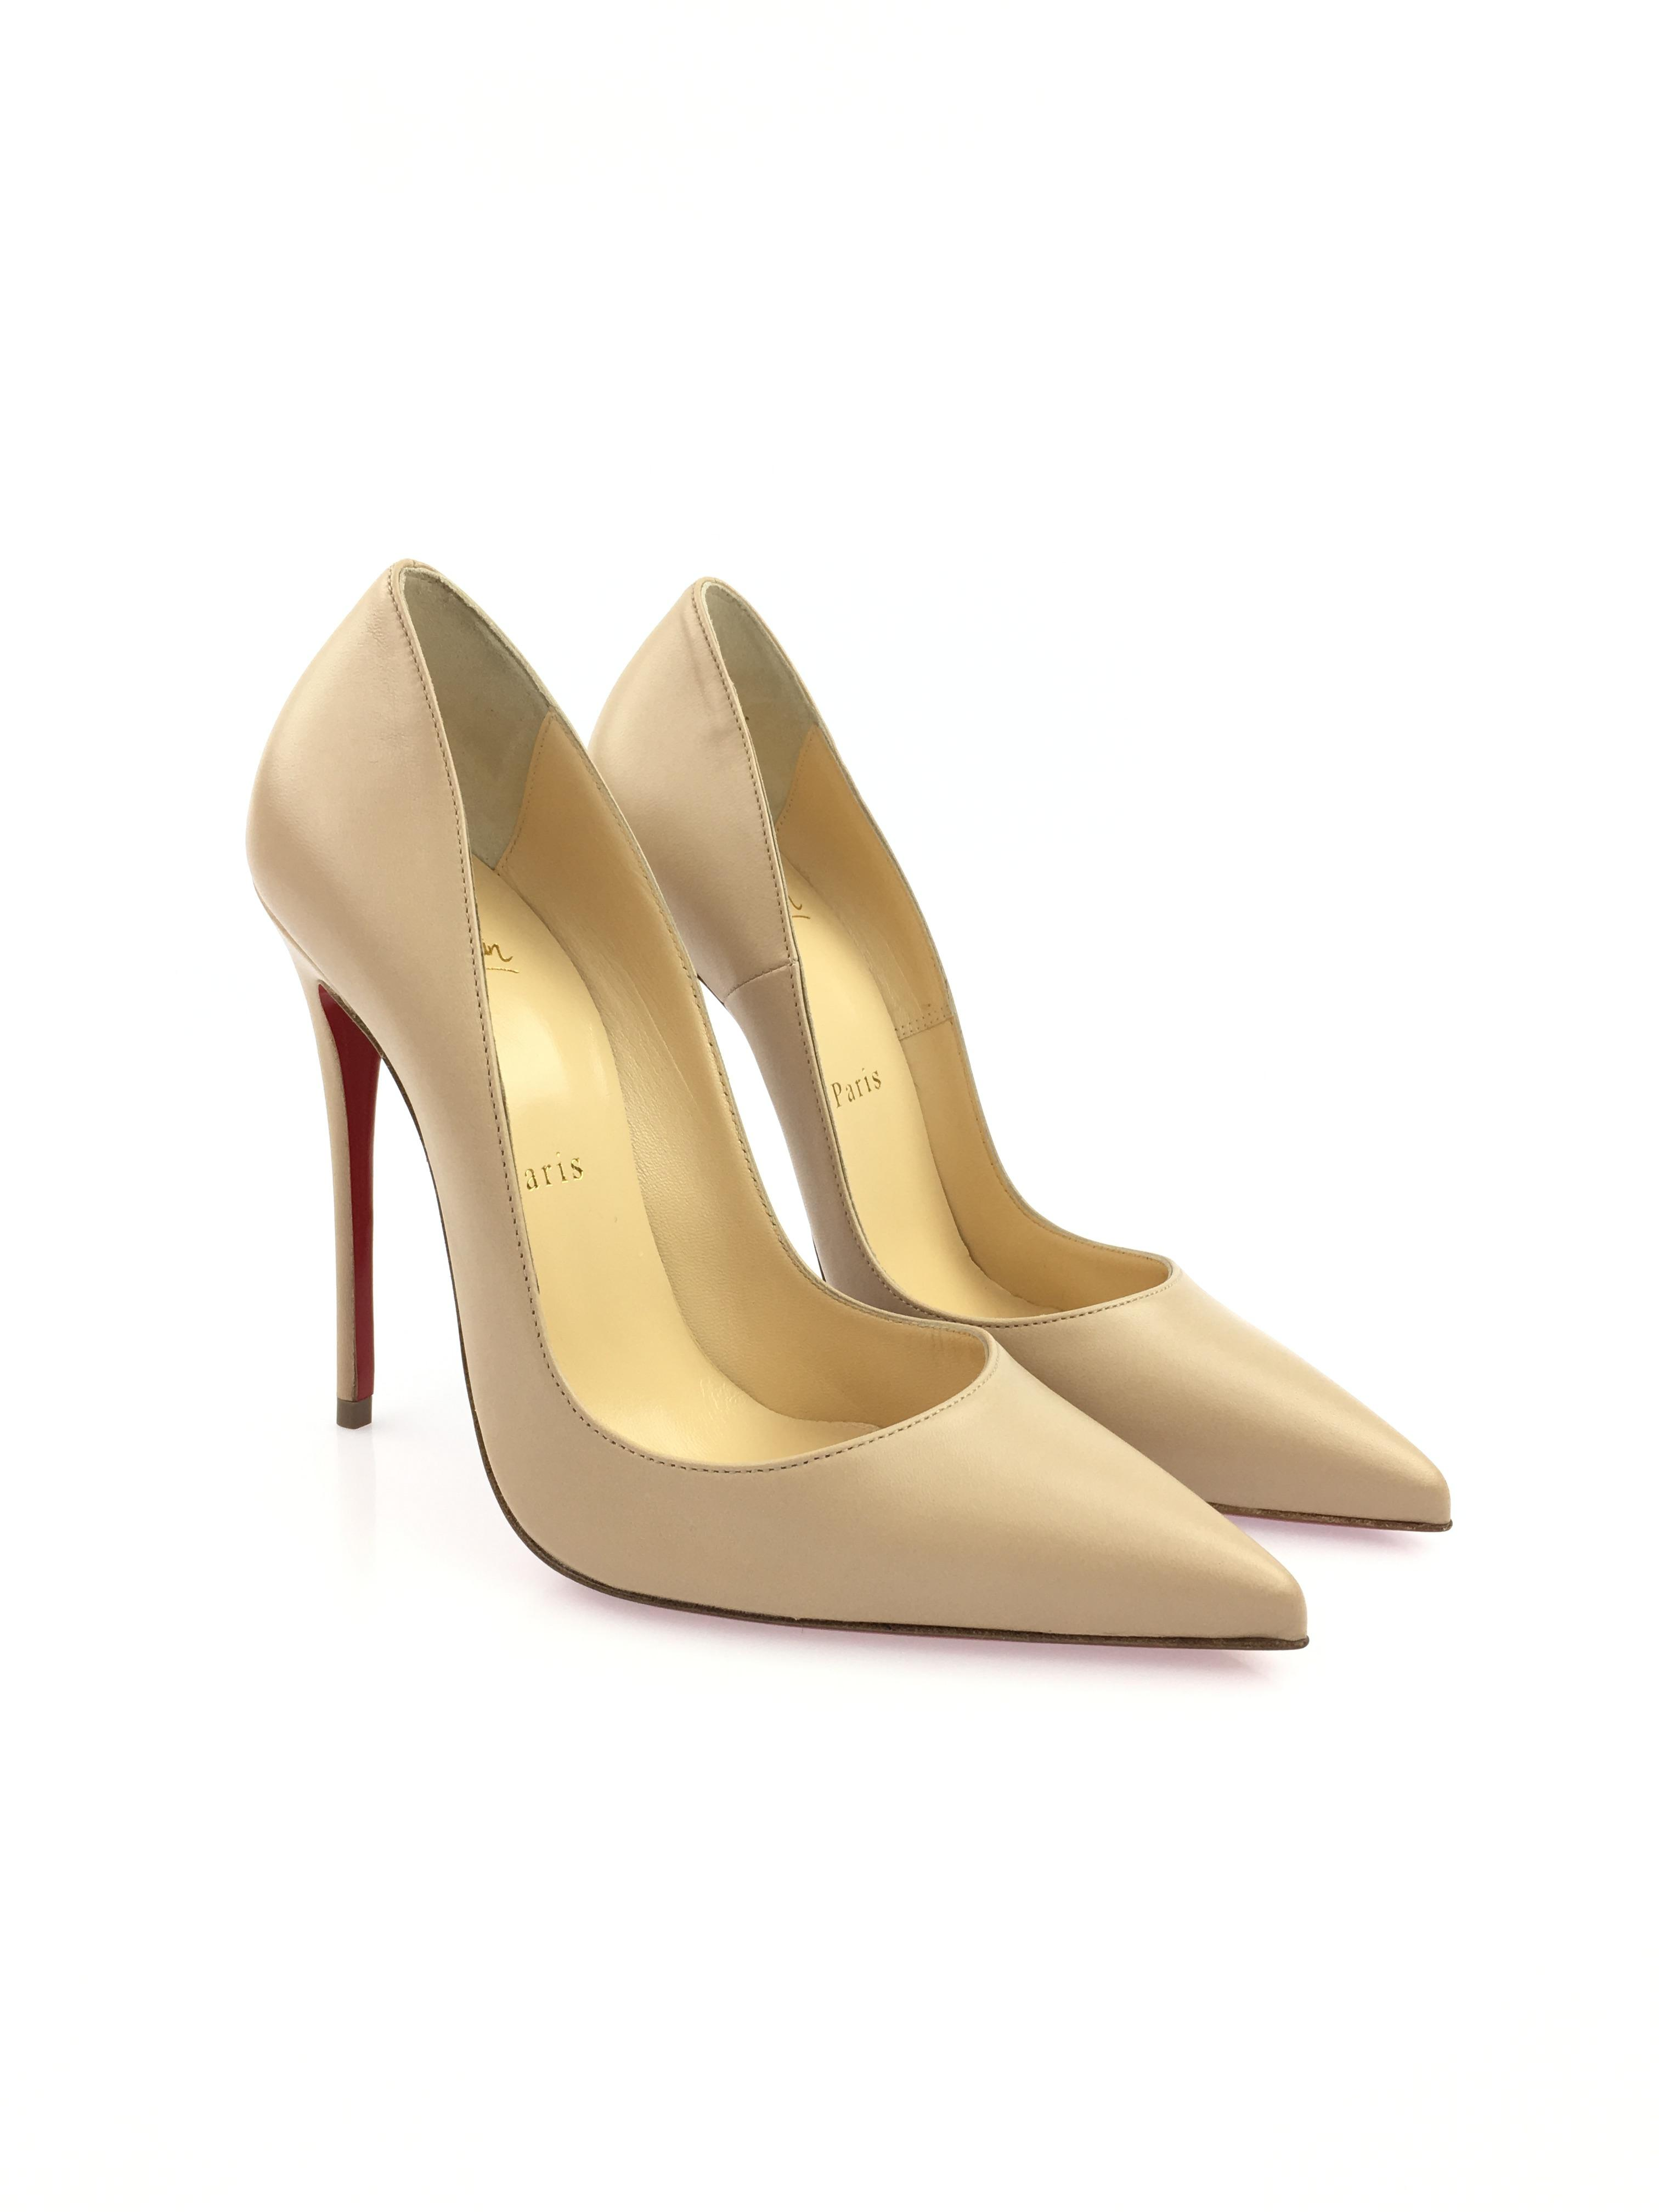 8a5a3661dbd91 Mr Ms :Christian Louboutin Pink Pigalle Follies Rosa Suede Stiletto Pumps  Size EU 35 (Approx. US 5) Regular (M